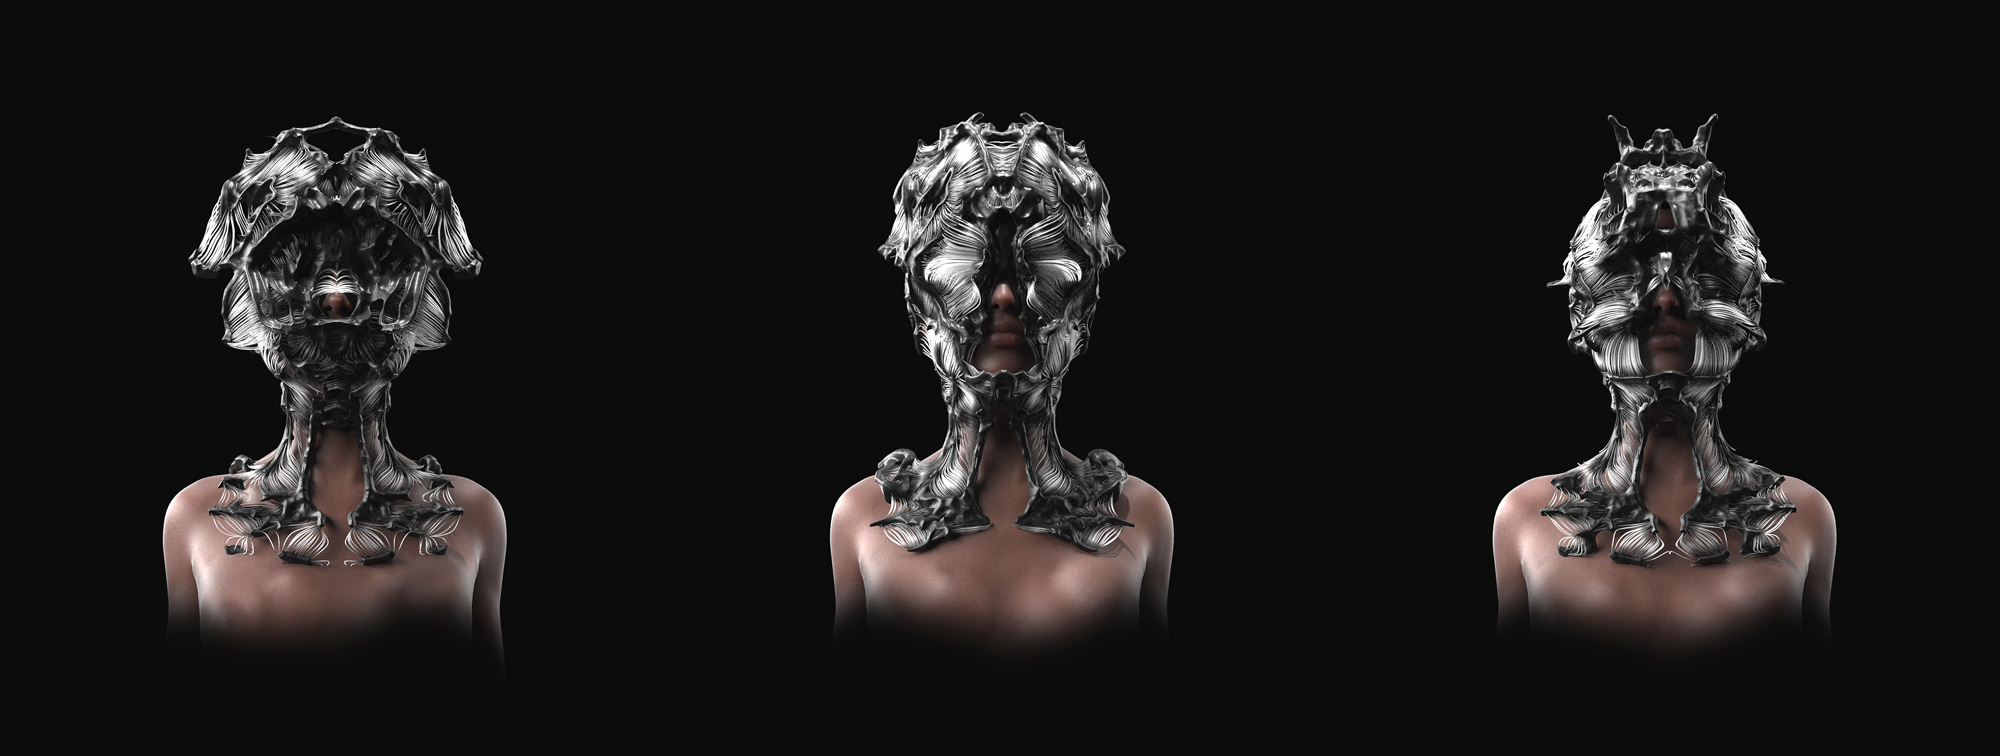 3D rendered masks projected onto human form